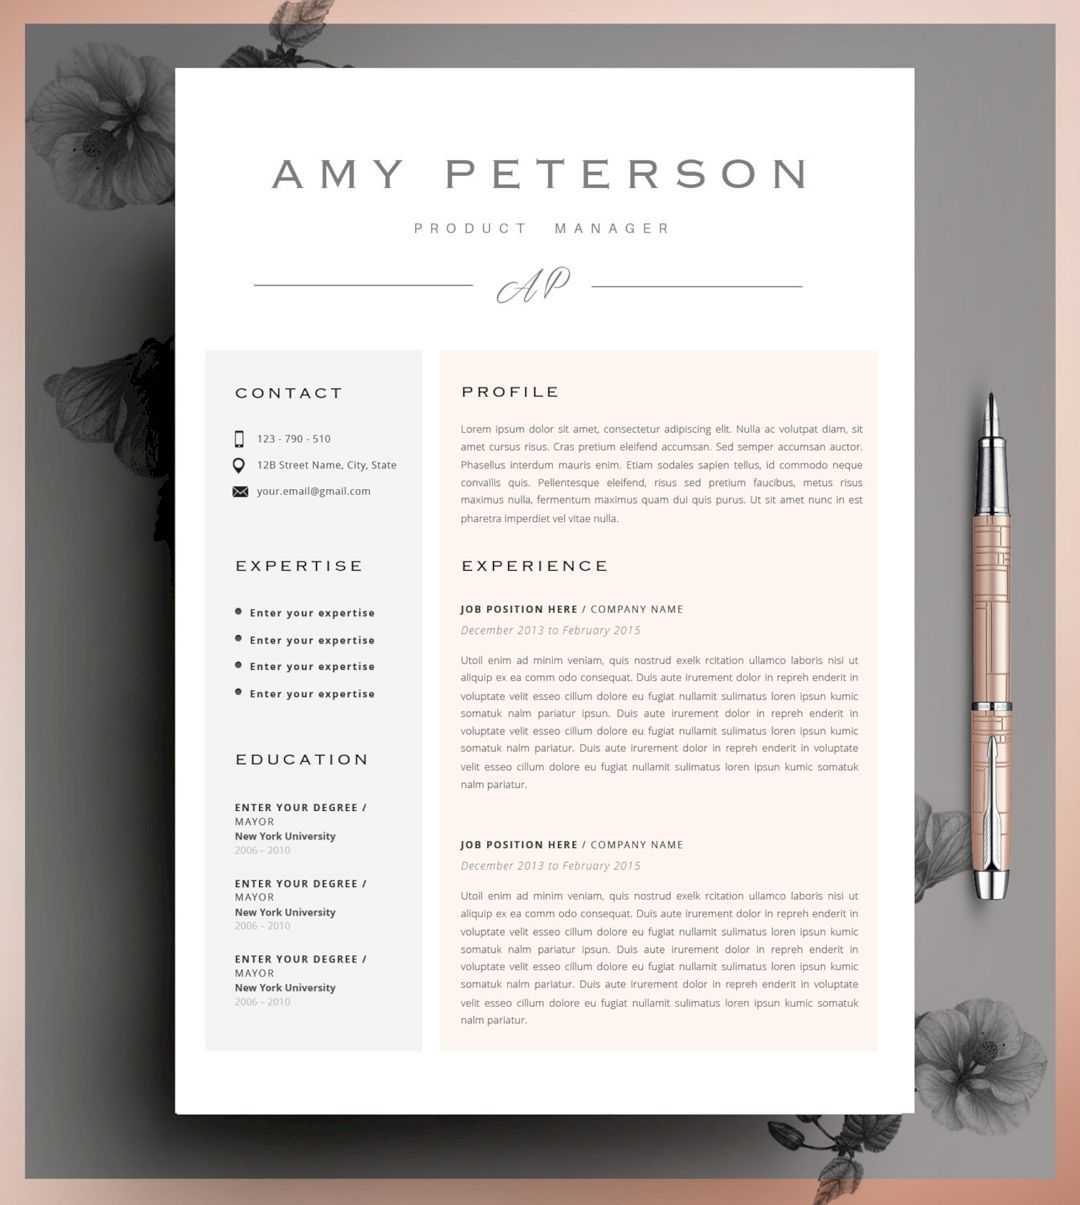 Cool Resume Design Ideas  Resume Ideas